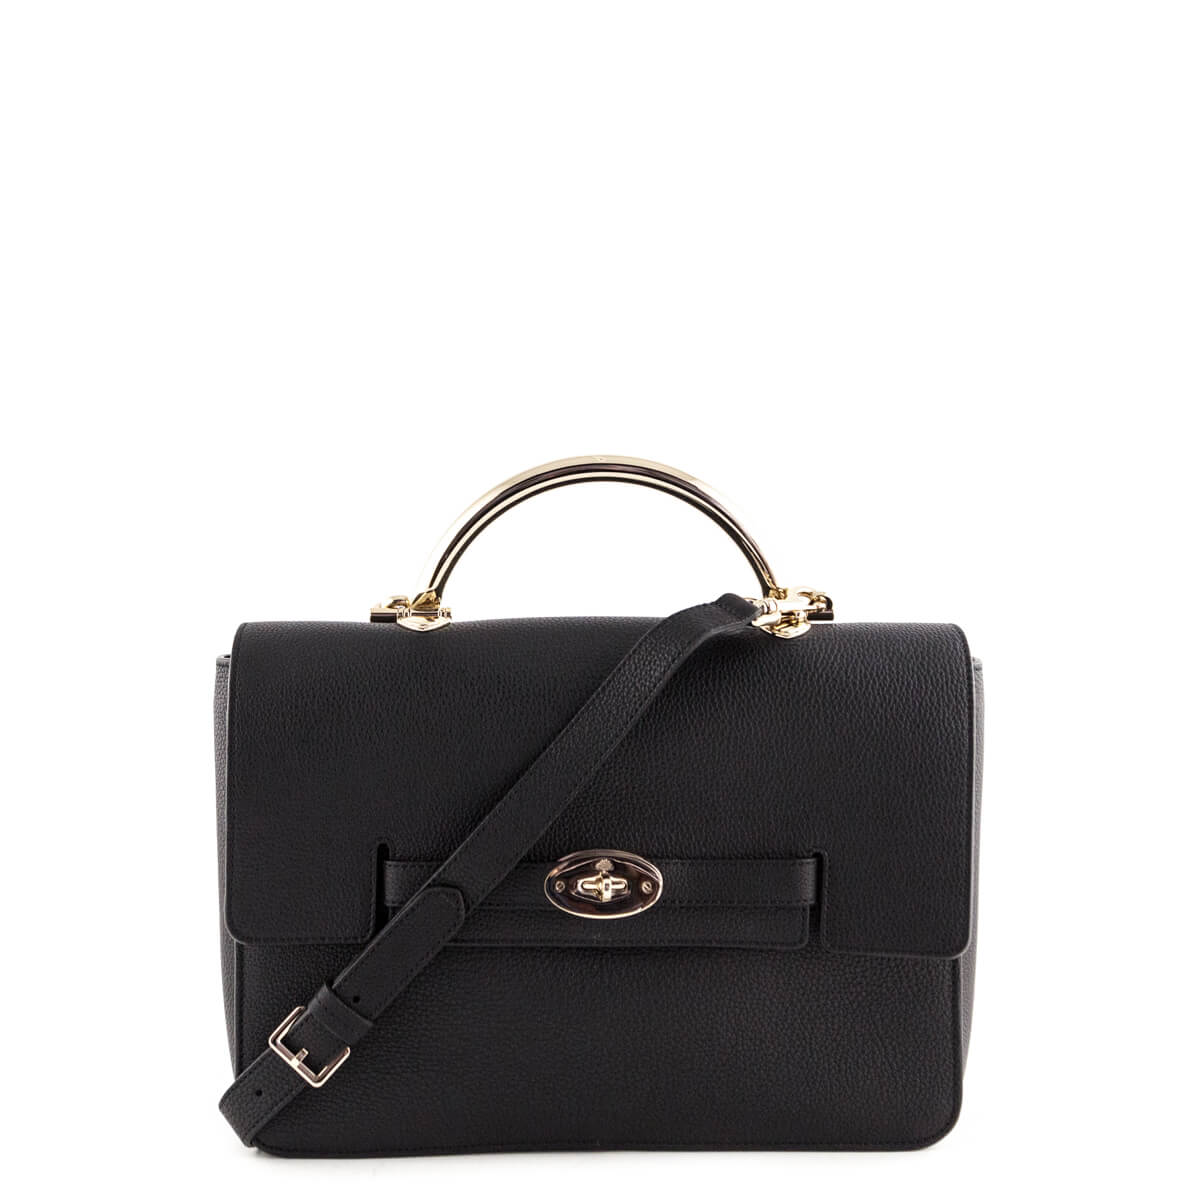 7d74786405c9 Mulberry Black Grainy Calfskin Large Bayswater - LOVE that BAG - Preowned  Authentic Designer Handbags ...